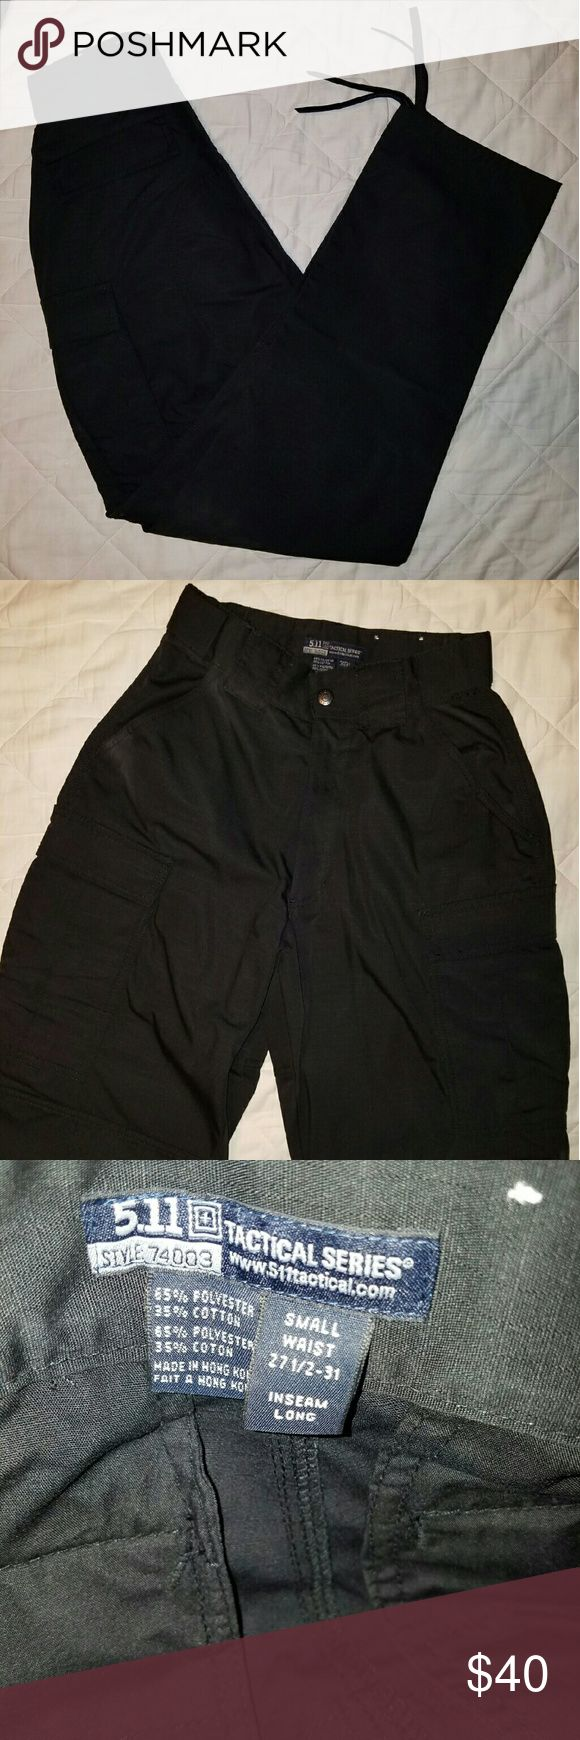 "NWOT 511 tactical TDU pants 27.5-31"" x 34"" These are brand new without tags. Waistband stretches from a 27.5"" to 31"".  I've owned several of these pants and they are awesome!  Very durable and long lasting.  Great for law enforcement,  fire, security, EMT, etc. Retail for $$49.99 5.11 Tactical Pants Cargo"